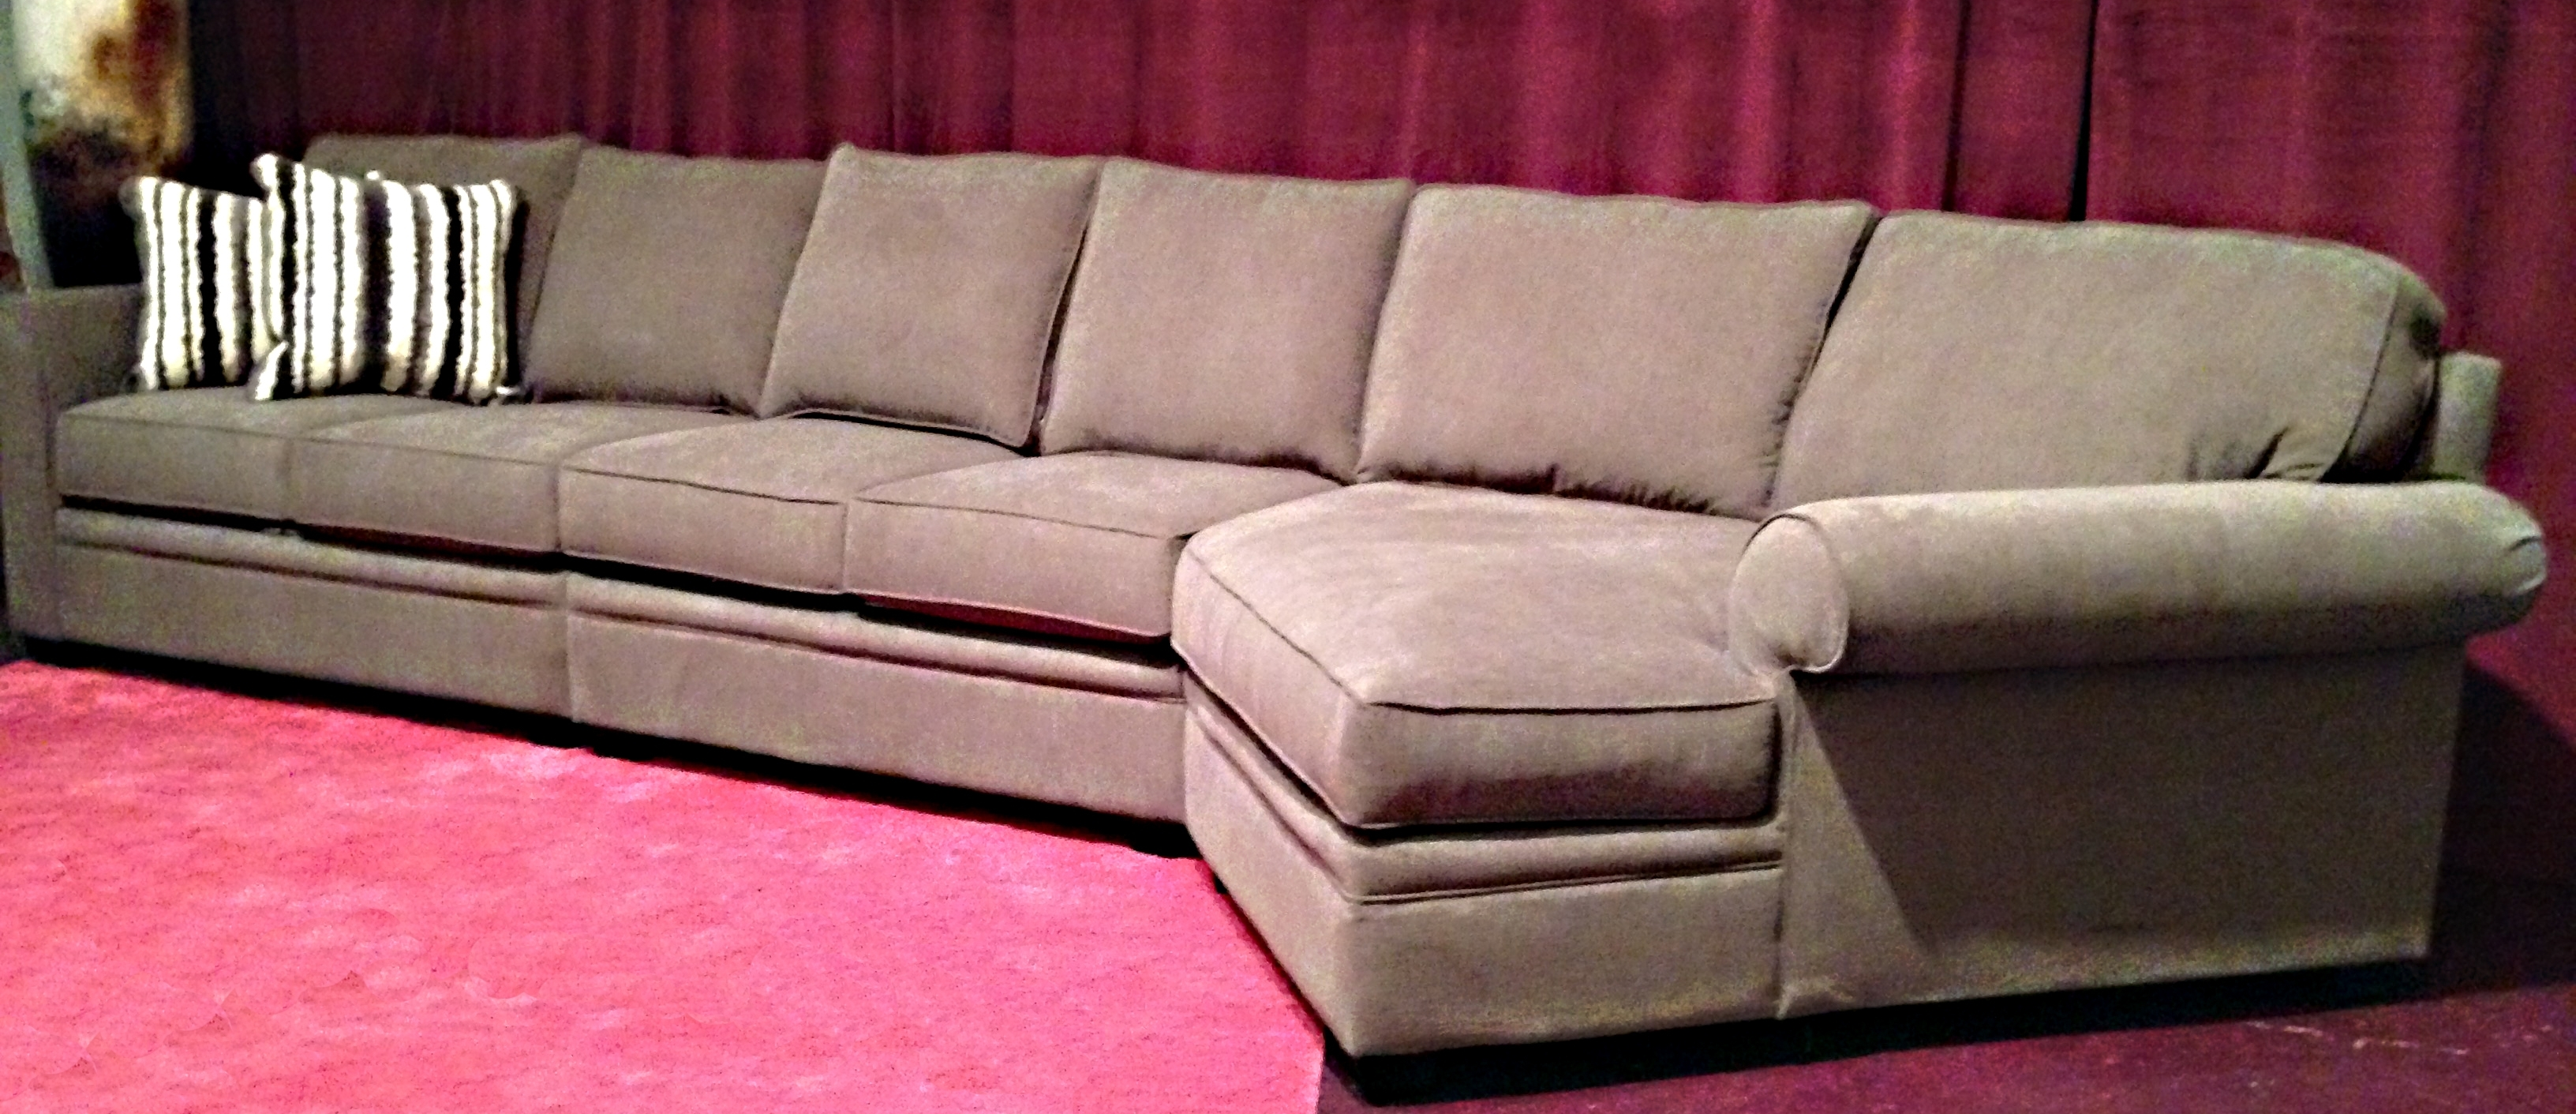 Oversized Couch For Sectional Sofas At Amazon (View 5 of 20)